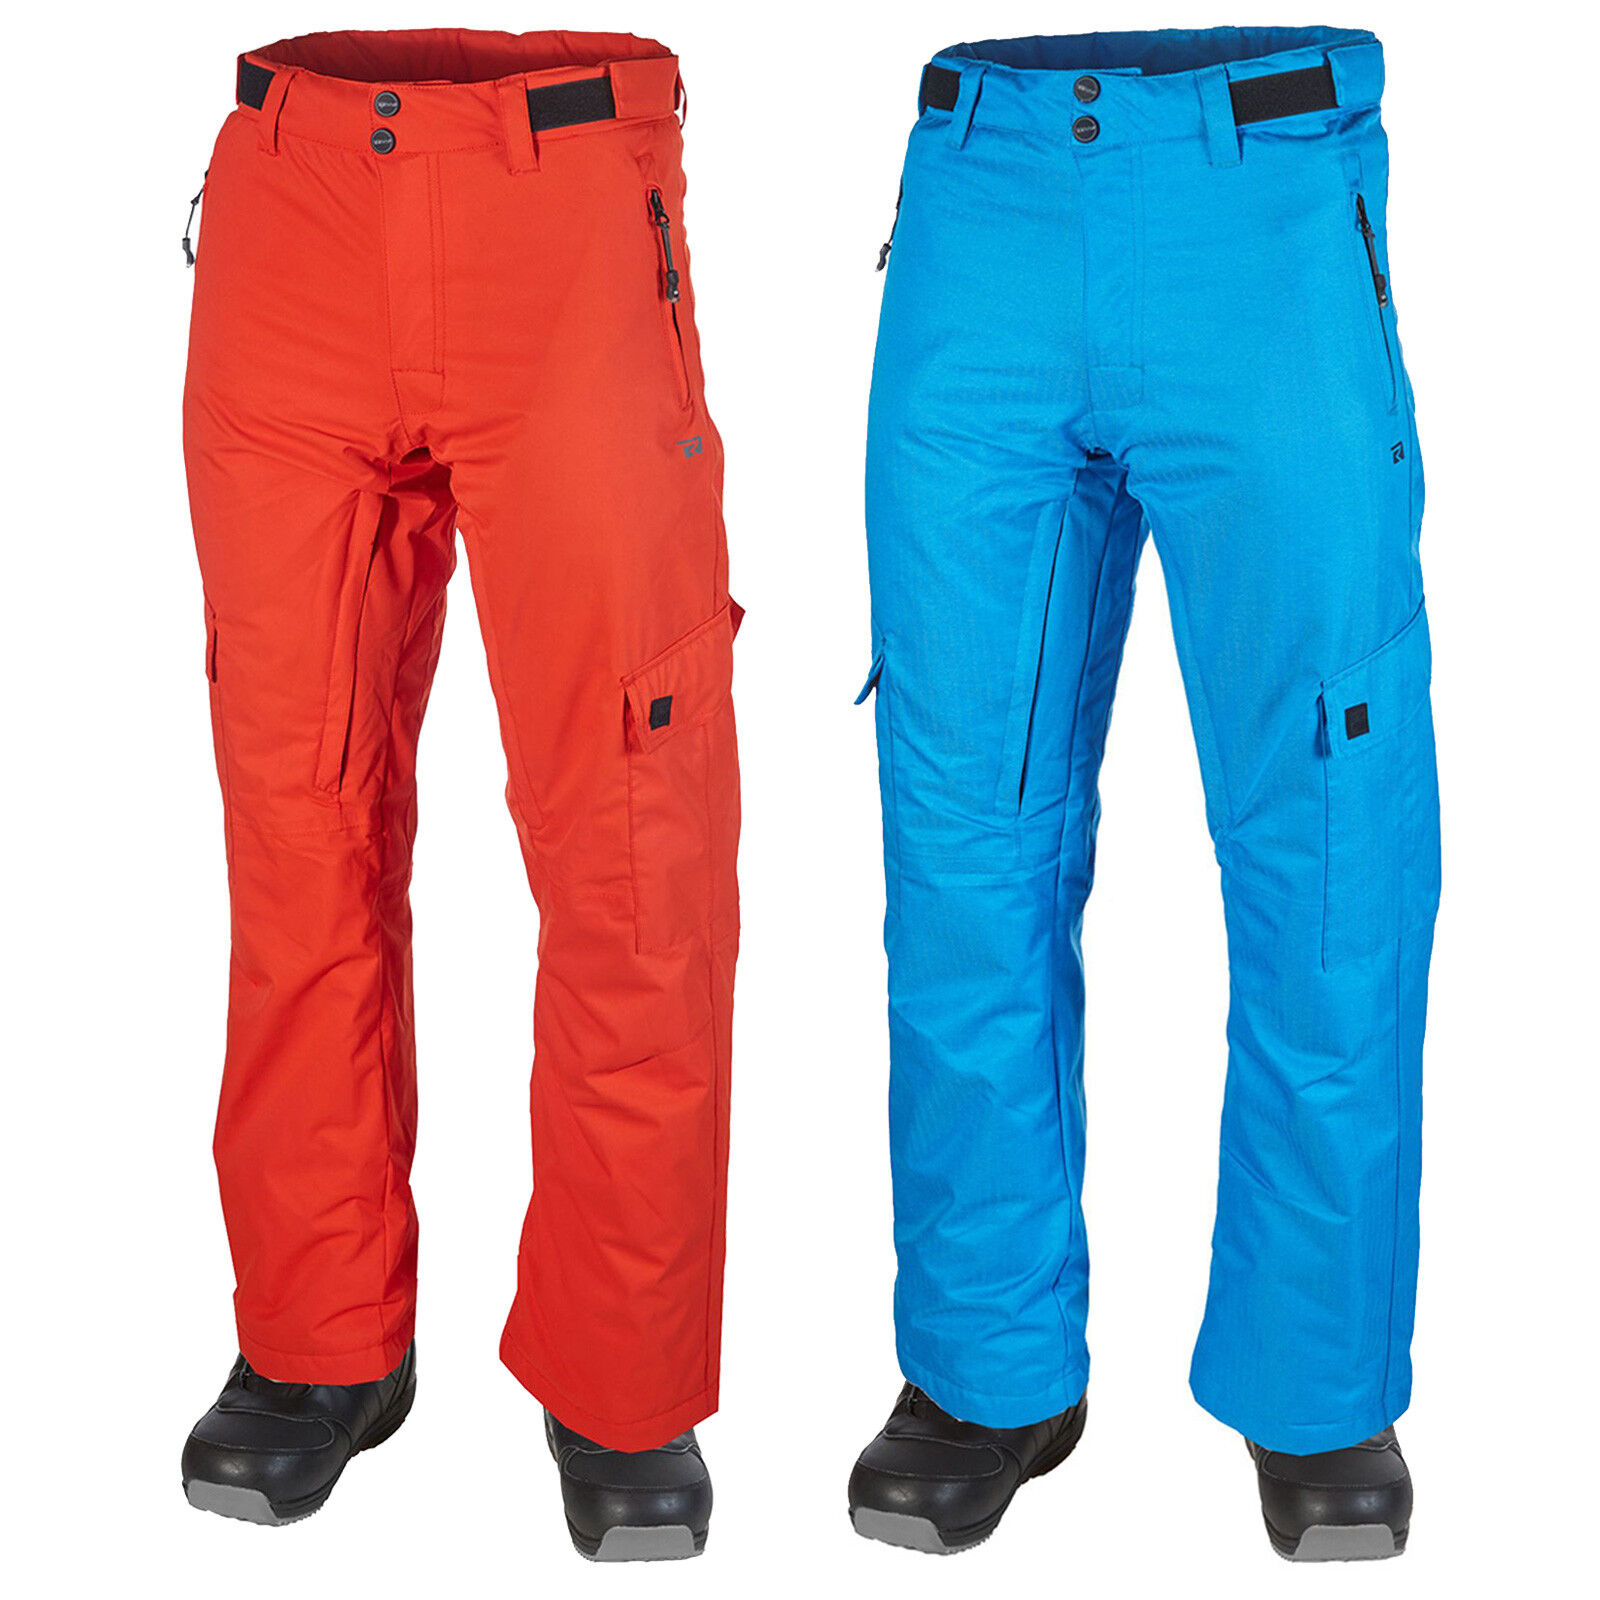 Rehall Dexter-R Men's Ski Pants Snowboard Functional Winter Trousers New